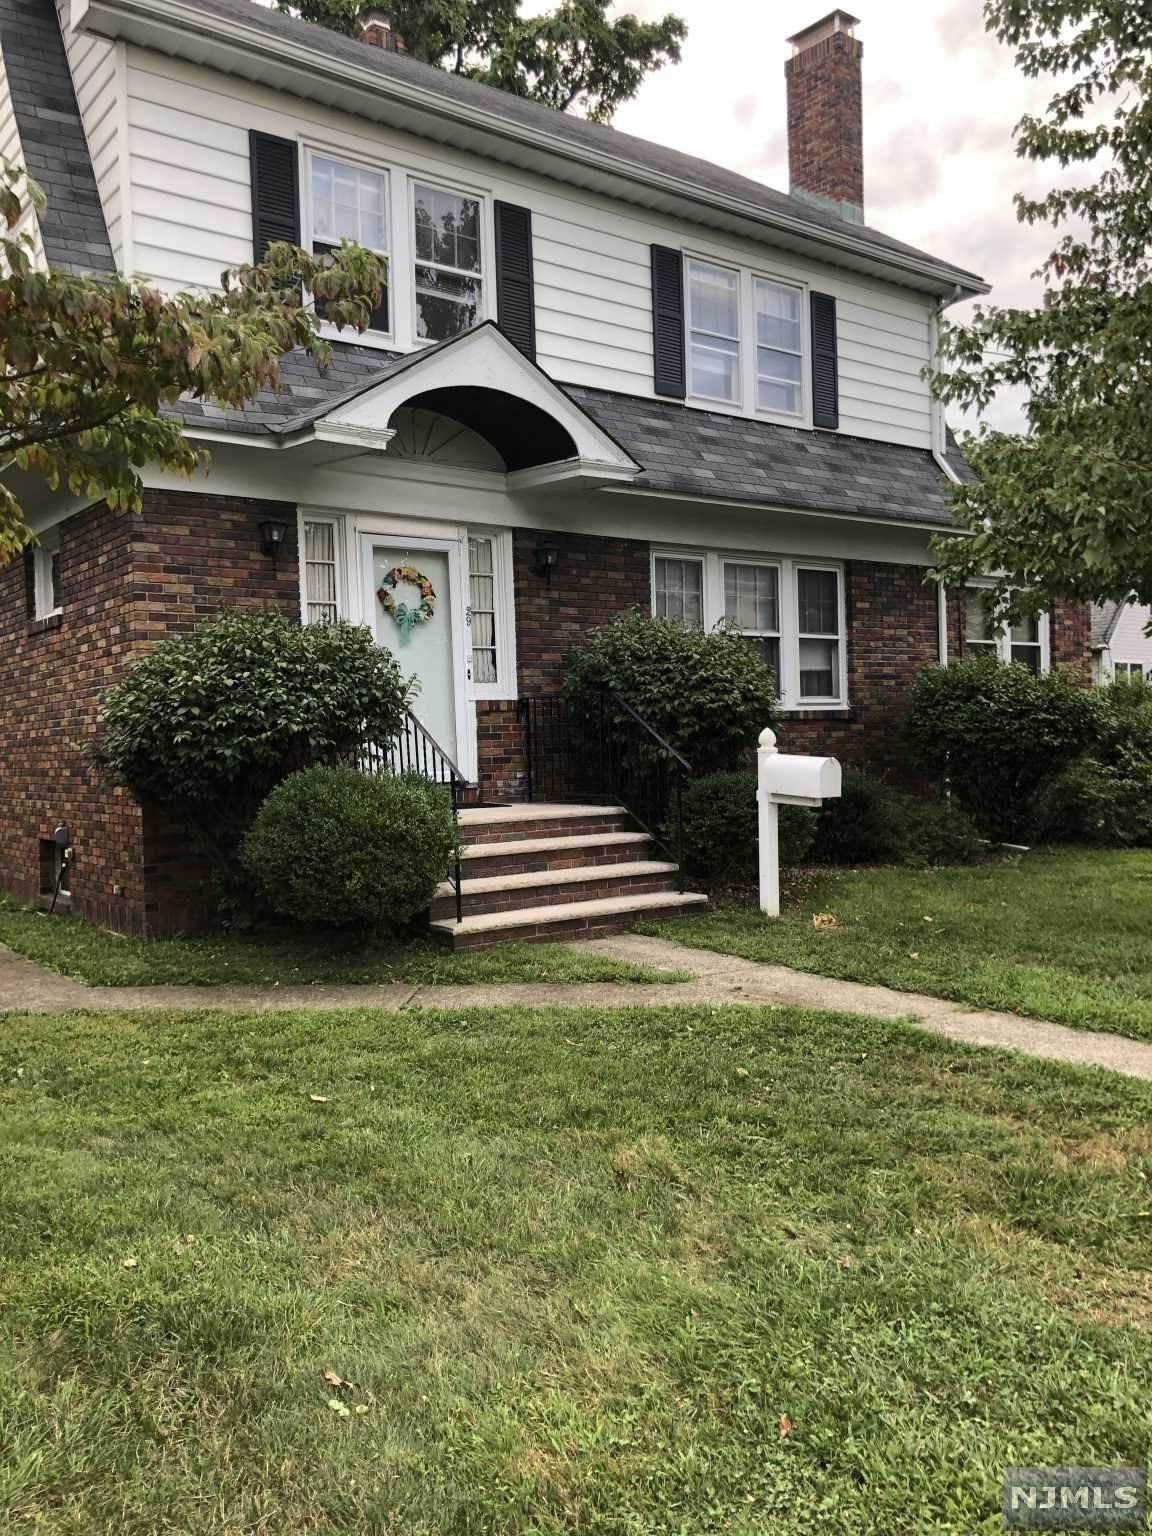 Rental Communities for Rent at 29 Van Pelt Place #2 Little Falls, New Jersey, 07424 United States